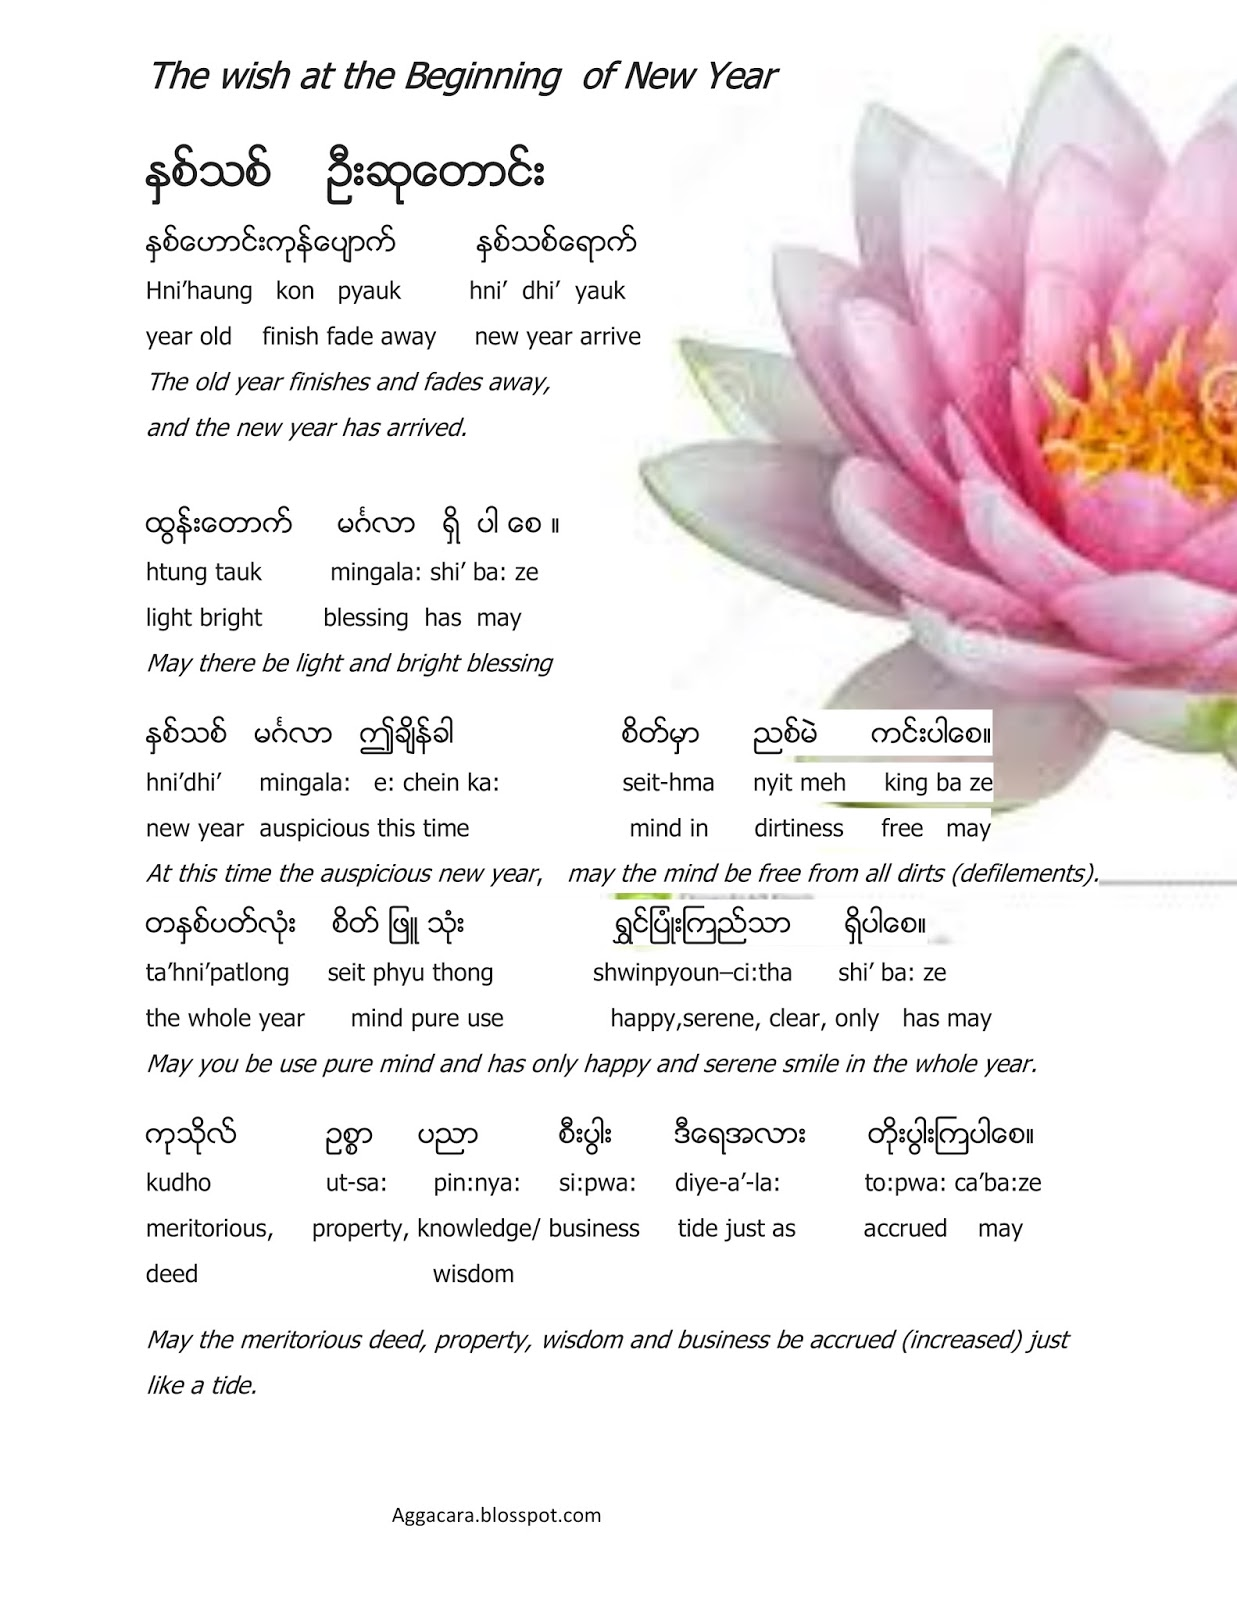 Aggcra noble practice education and missionary centre 2015 we encourage you to learn the burmese of this poem this poem is written by sayadaw chanmay izmirmasajfo